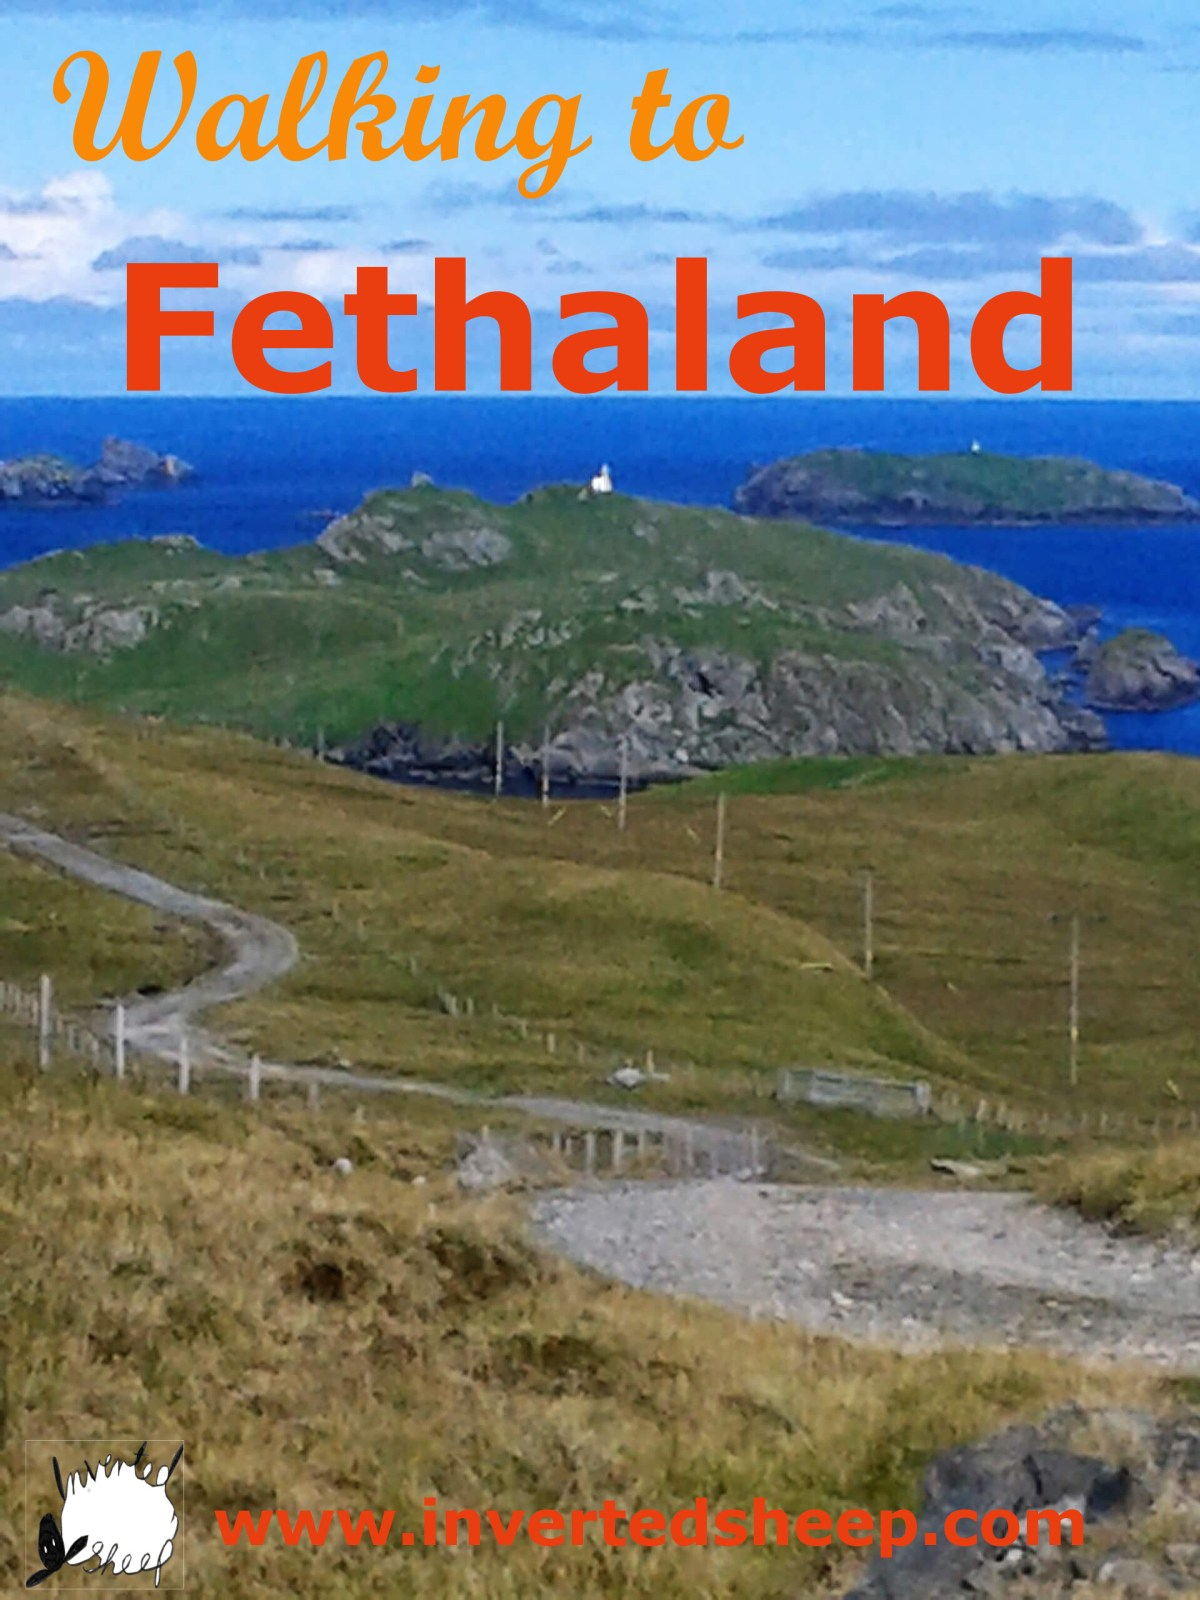 walking to Fethaland